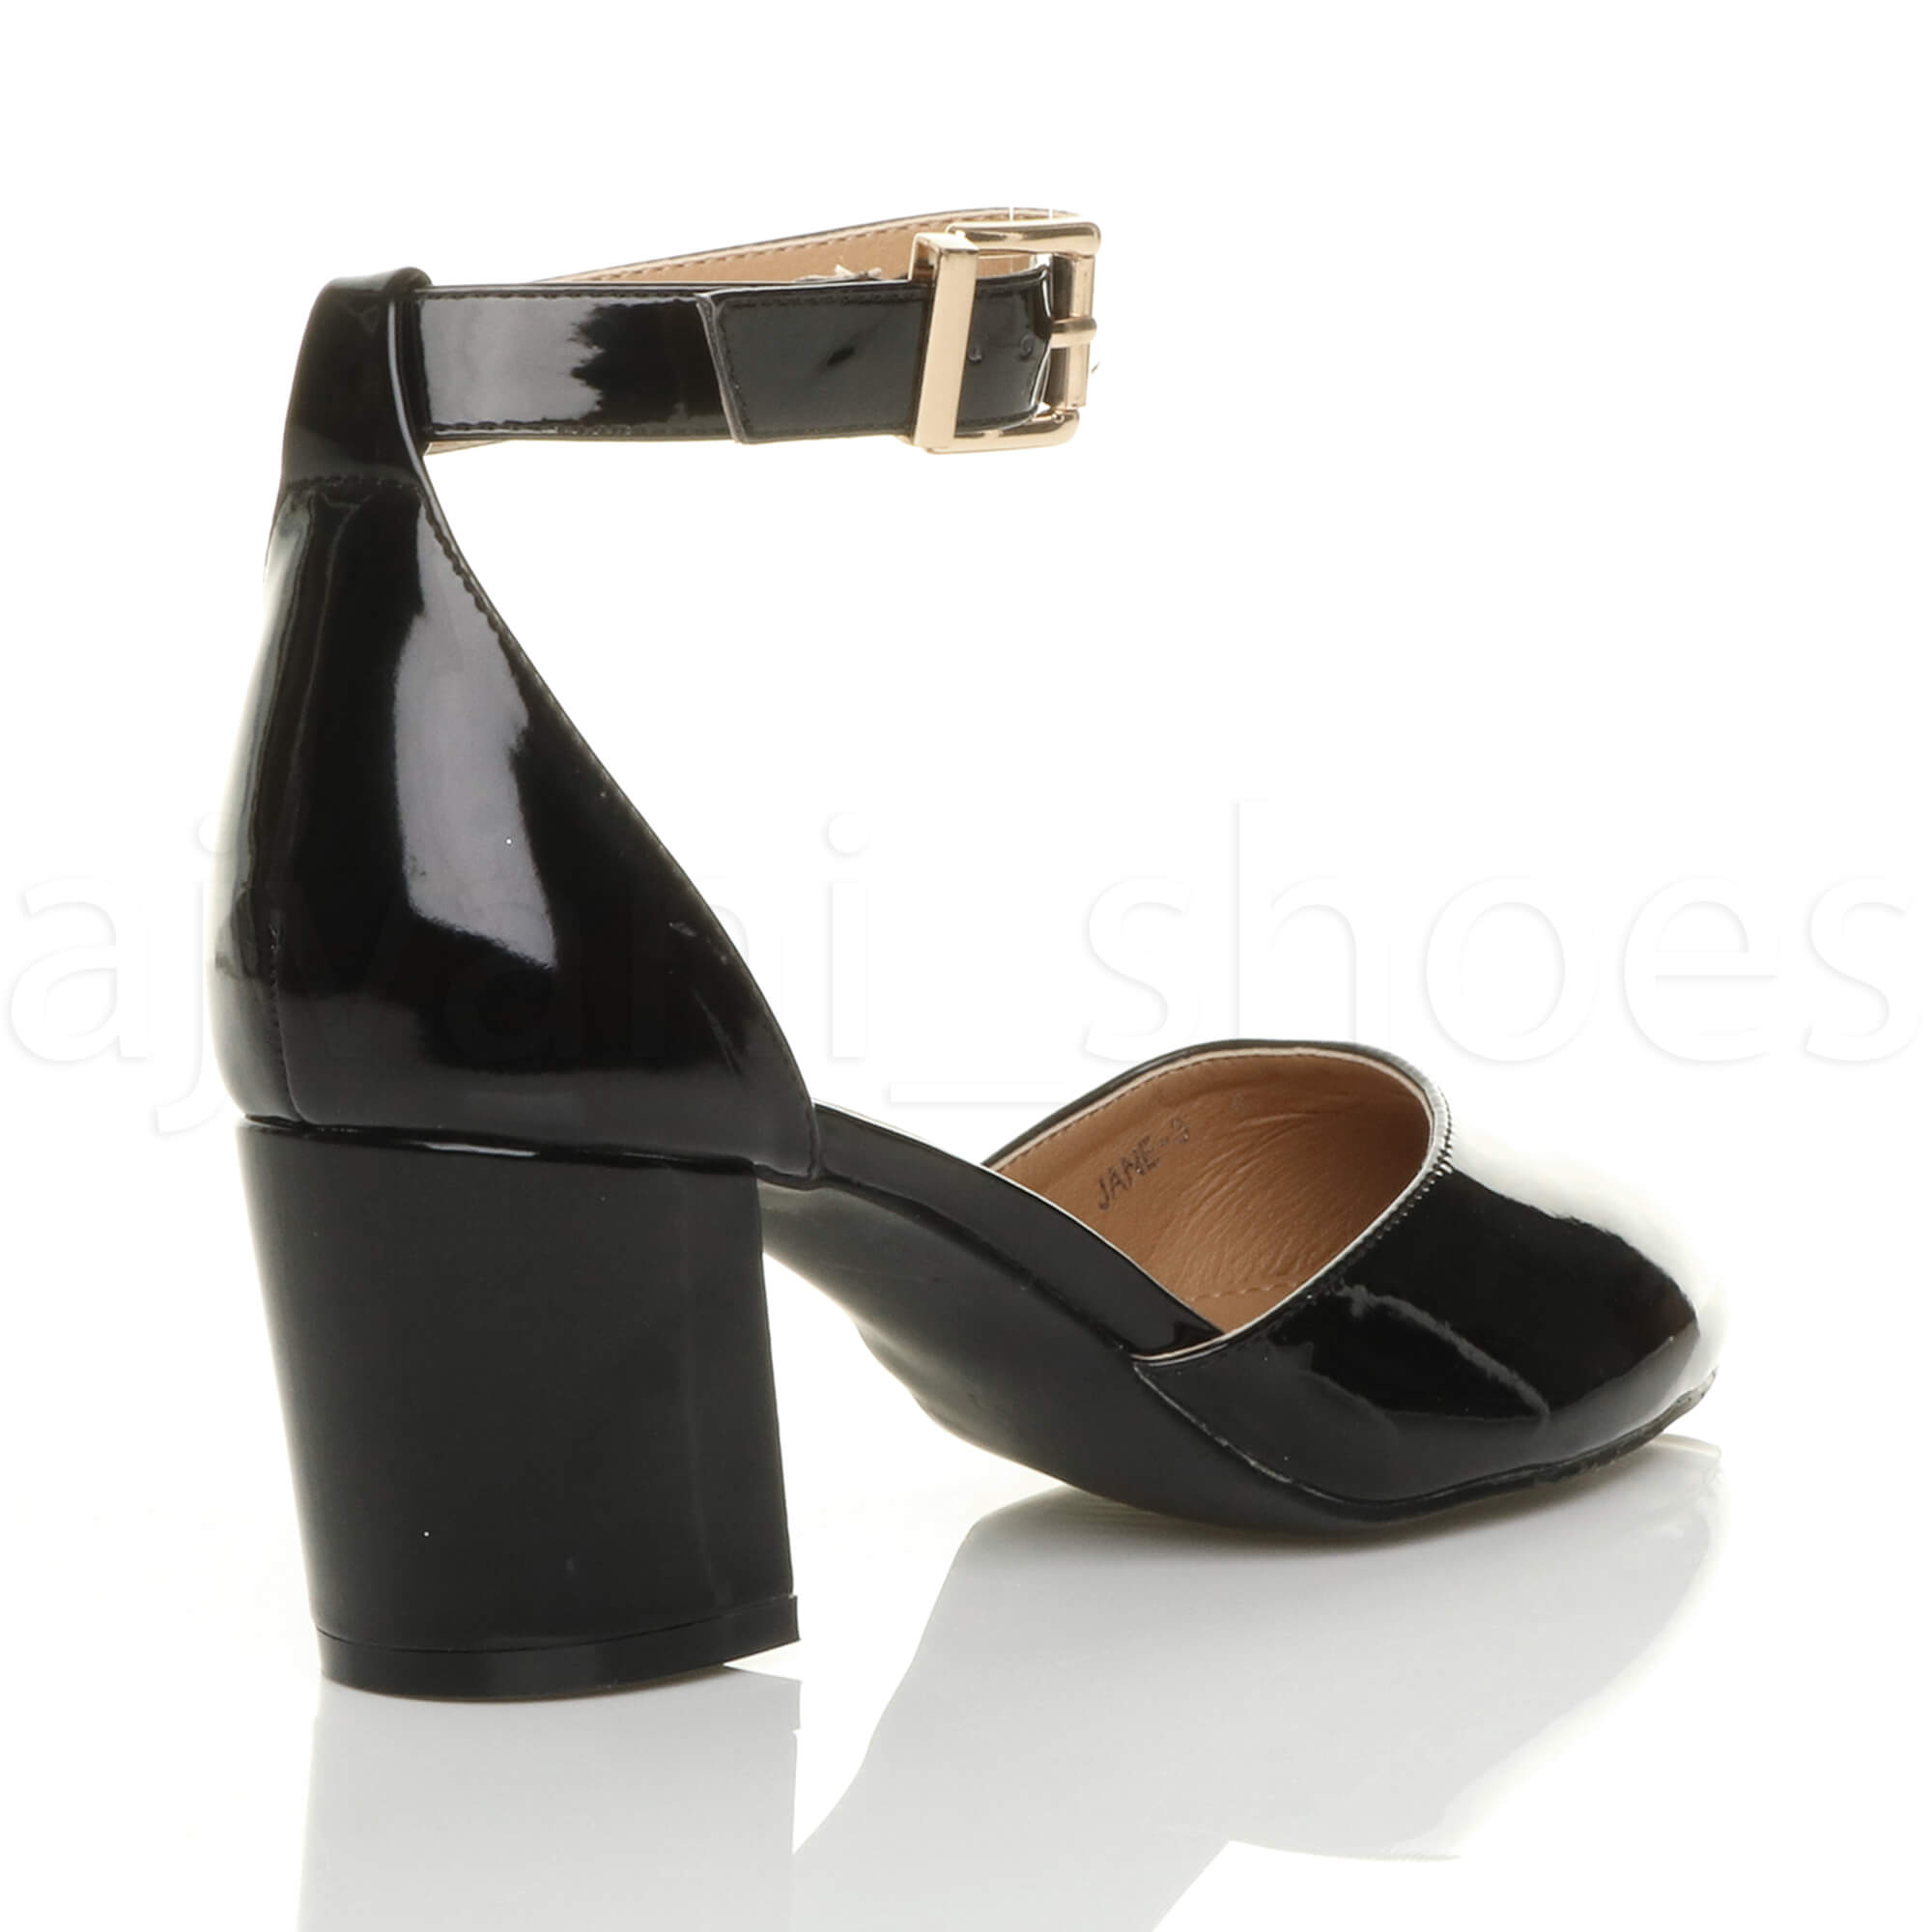 WOMENS-LADIES-LOW-MID-BLOCK-HEEL-ANKLE-STRAP-MARY-JANE-COURT-SHOES-SANDALS-SIZE thumbnail 13